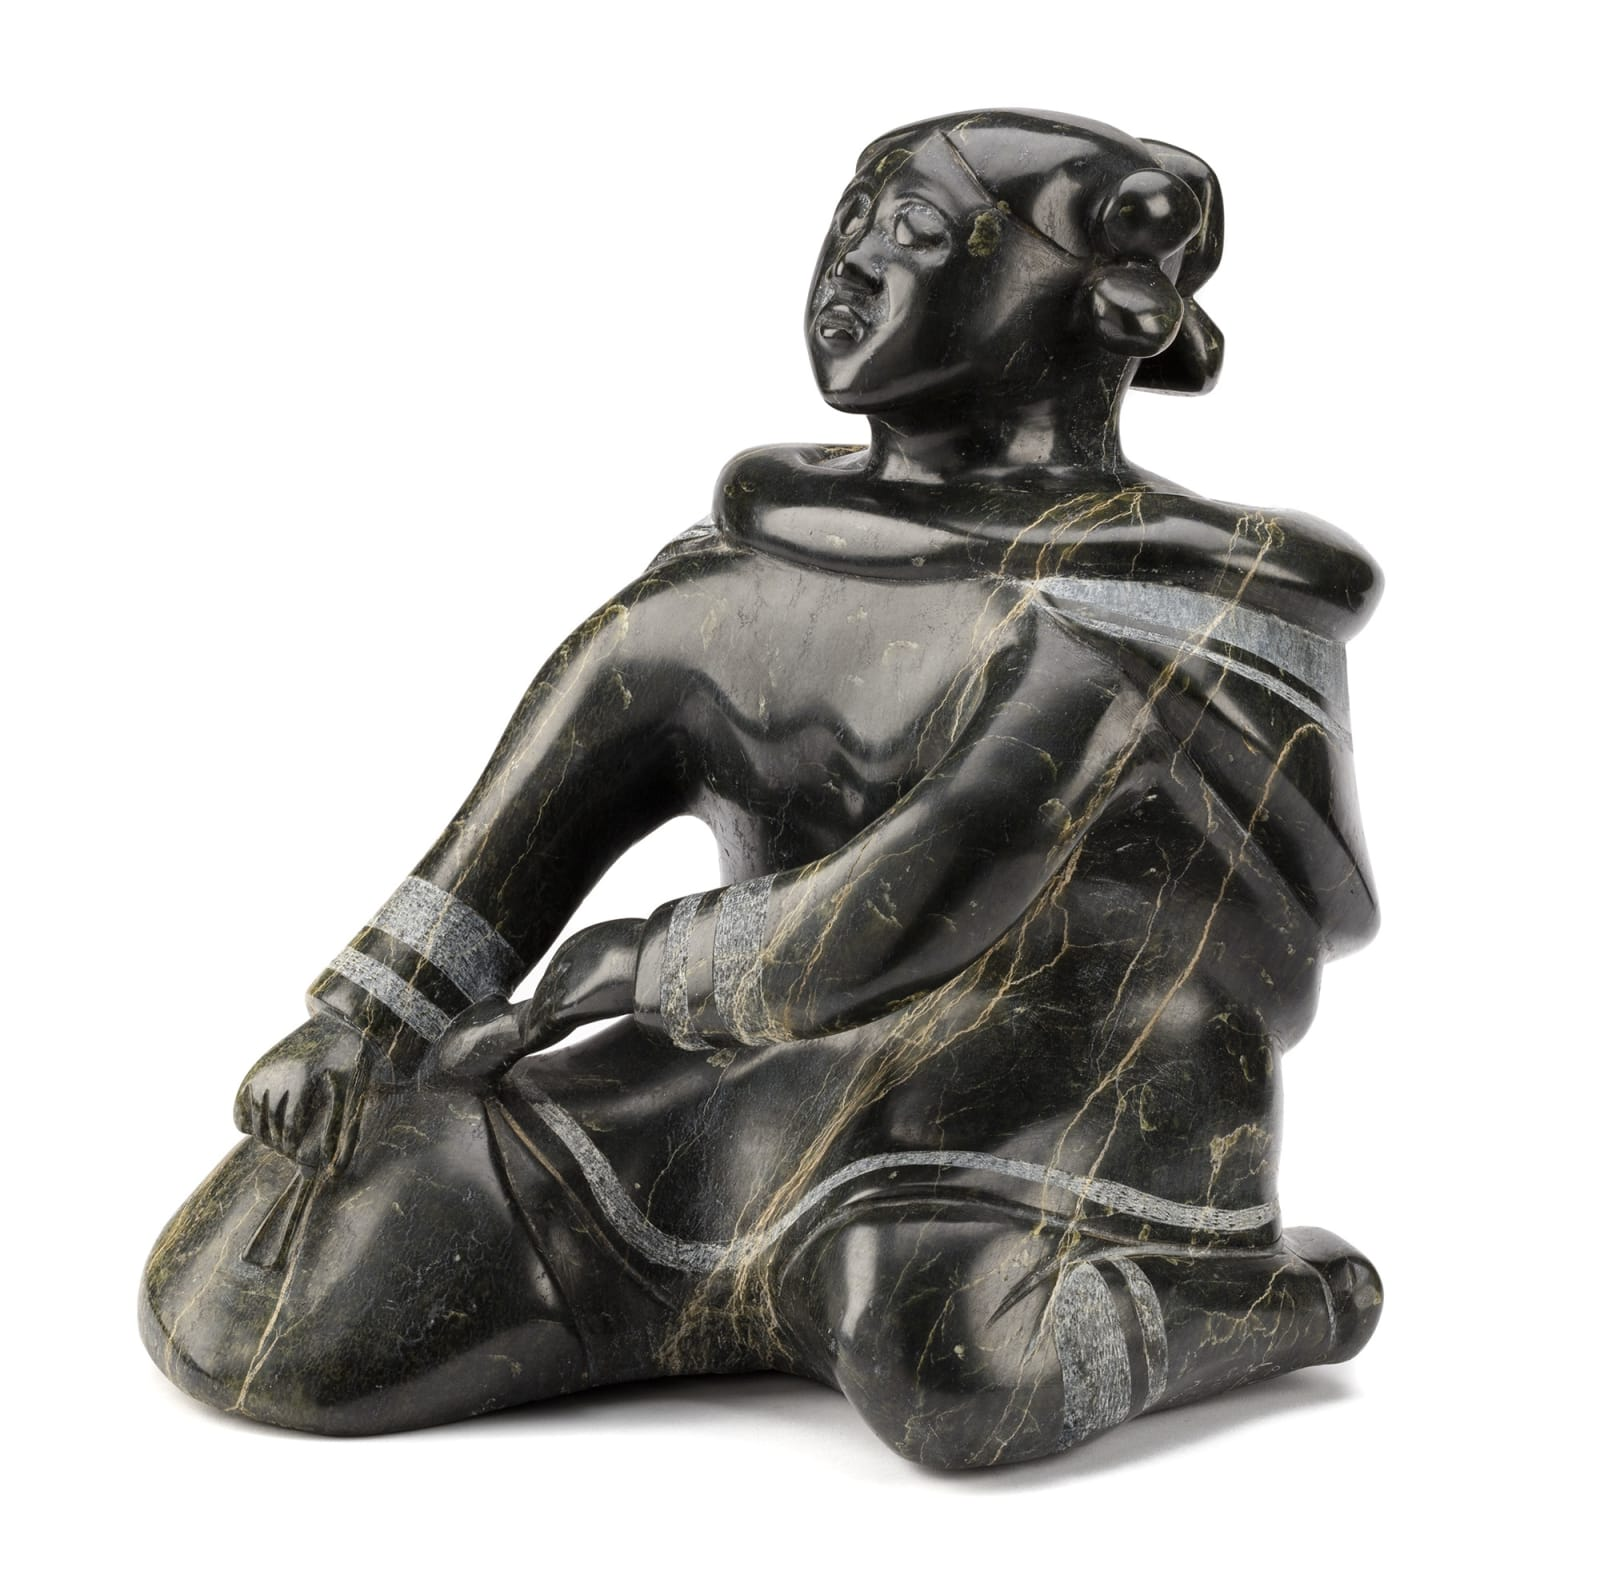 Lot 80 OSUITOK IPEELEE, R.C.A. (1923-2005) m., KINNGAIT (CAPE DORSET) Kneeling Woman Scraping a Skin, c. 1970 stone, 14.5 x 13 x 14.5 in (36.8 x 33 x 36.8 cm) Estimate: $25,000— $35,000 Price realiZed: $72,000